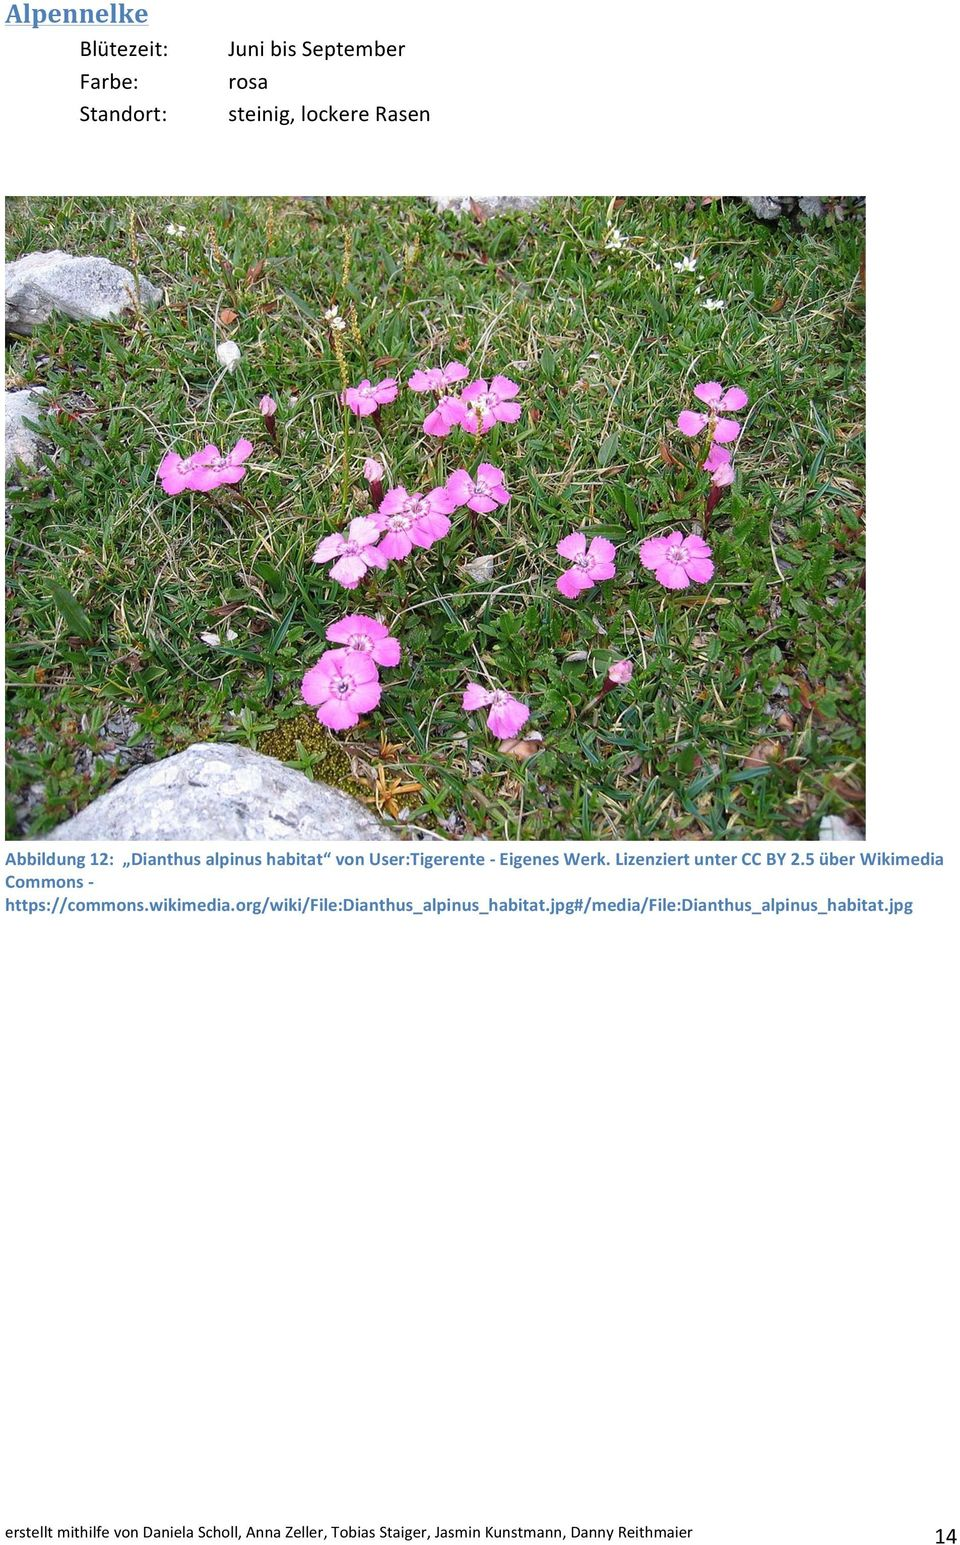 5 über Wikimedia Commons - https://commons.wikimedia.org/wiki/file:dianthus_alpinus_habitat.